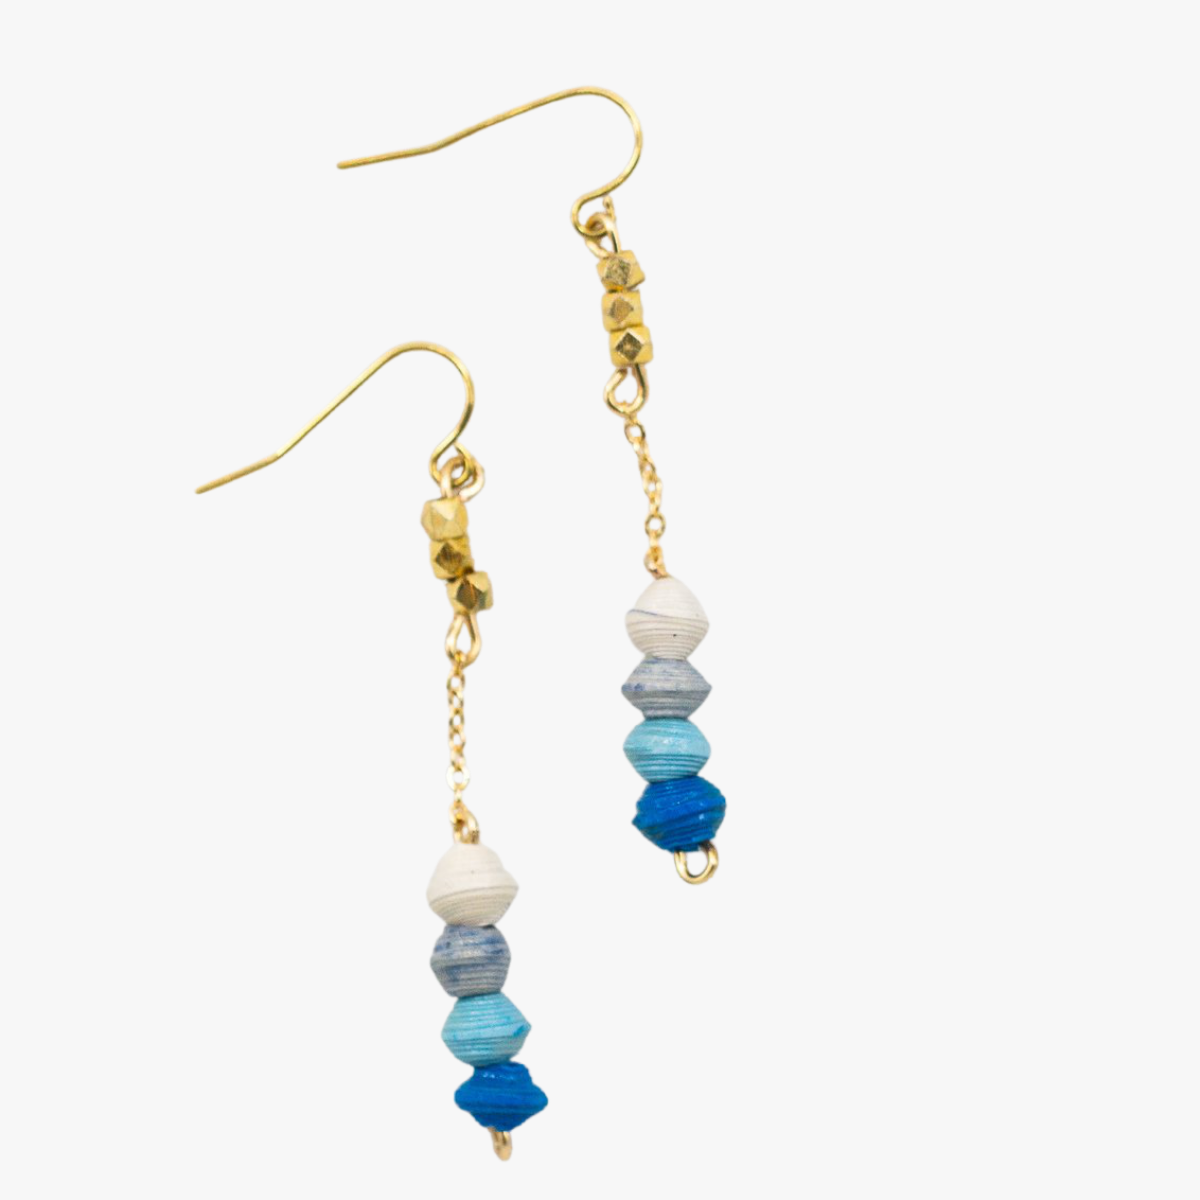 Ethically made blue ombre beaded drop earrings with 18k gold plated chain